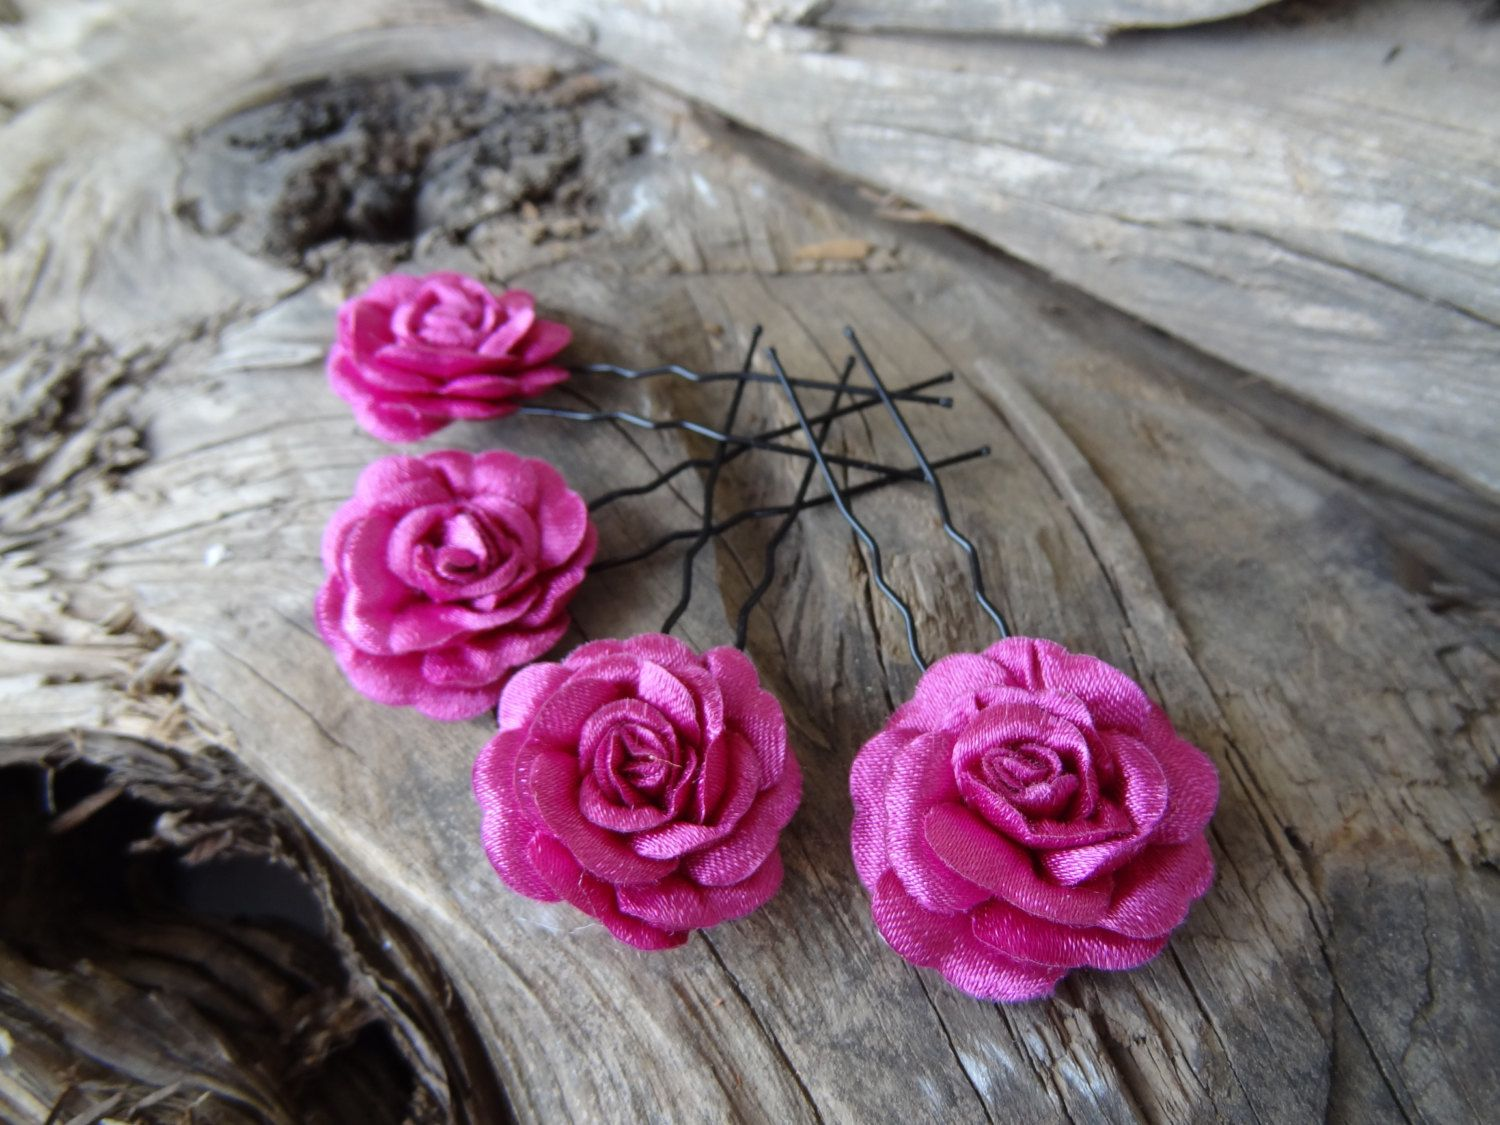 Plum Purple Satin Rose Wedding Hair Pins, Purple Bridal Hair Pins, Hair Accessories, Satin Hair Pins, Bridesmaid Hair, Woodland - Set of 4 by sevinchjewelry on Etsy